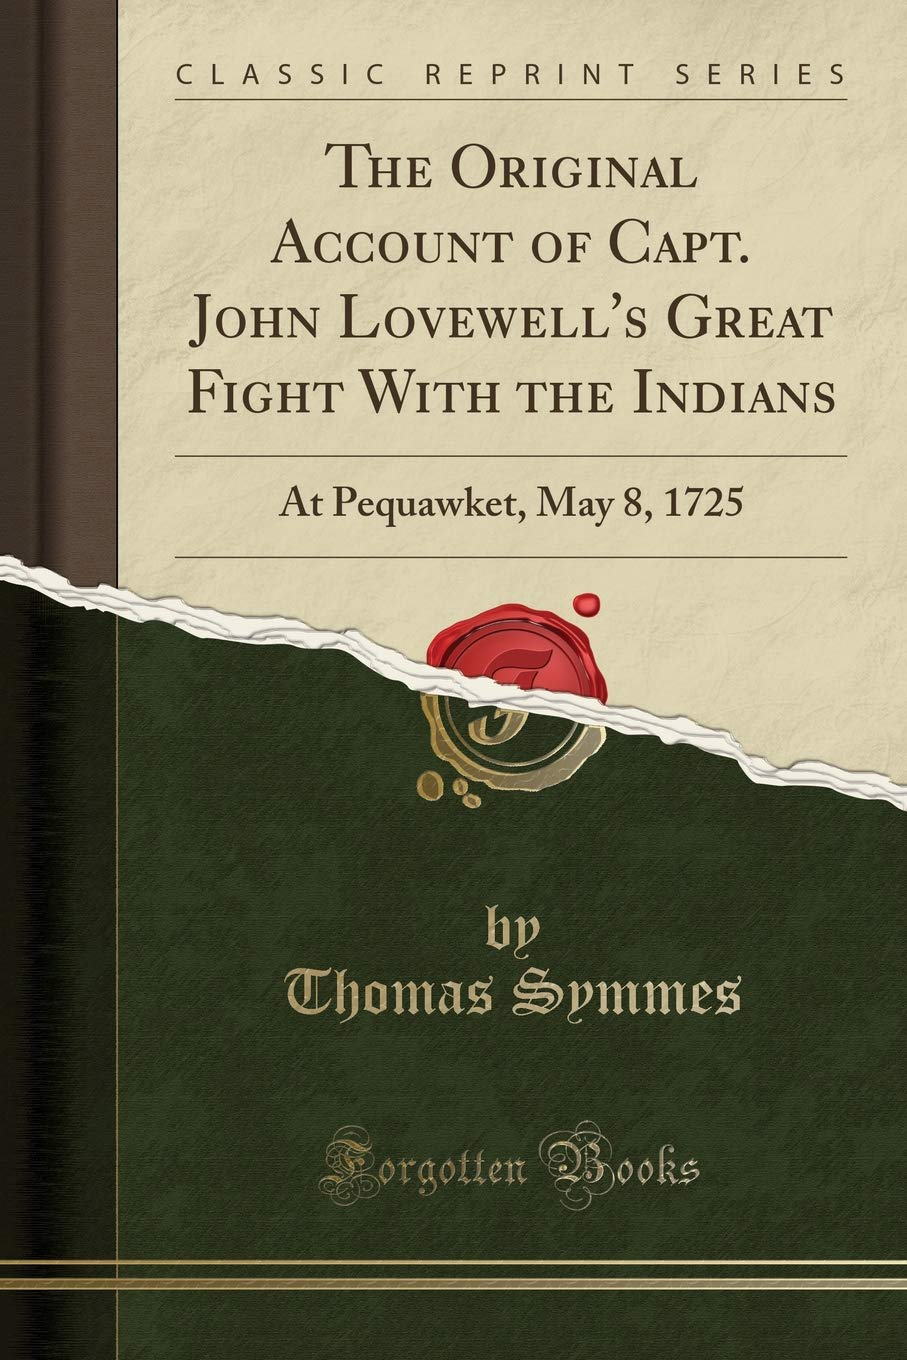 Download The Original Account of Capt. John Lovewell's Great Fight With the Indians: At Pequawket, May 8, 1725 (Classic Reprint) PDF